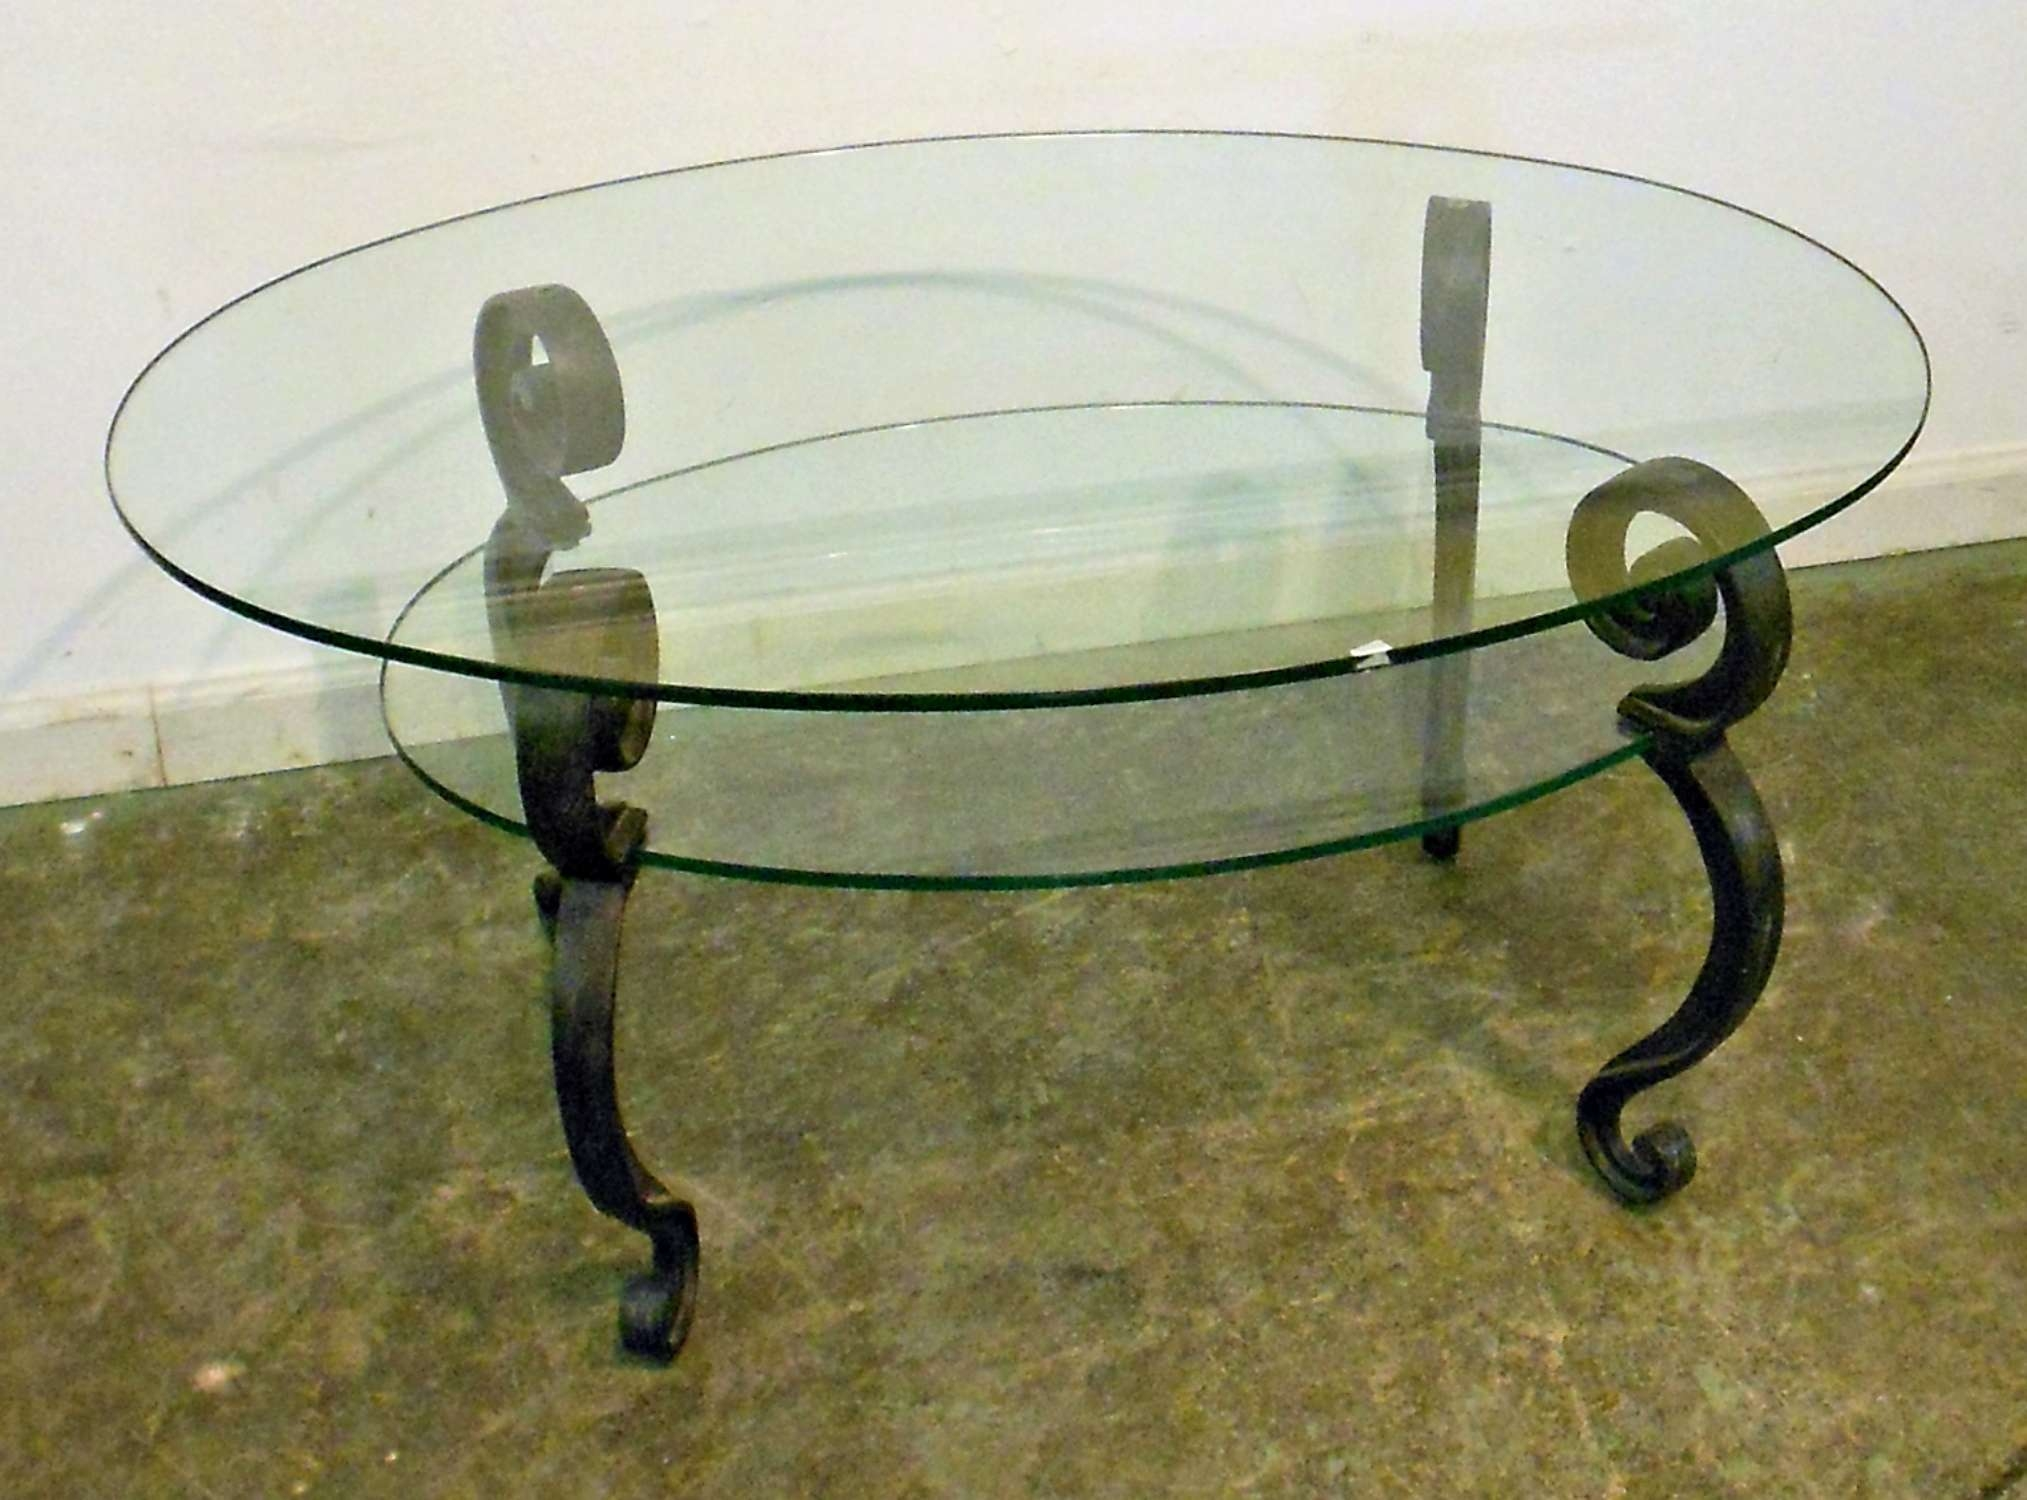 2018 Retro Glass Top Coffee Tables Inside Vintage Glass Top Coffee Table With Black Metal Legs And Shelves (View 5 of 20)